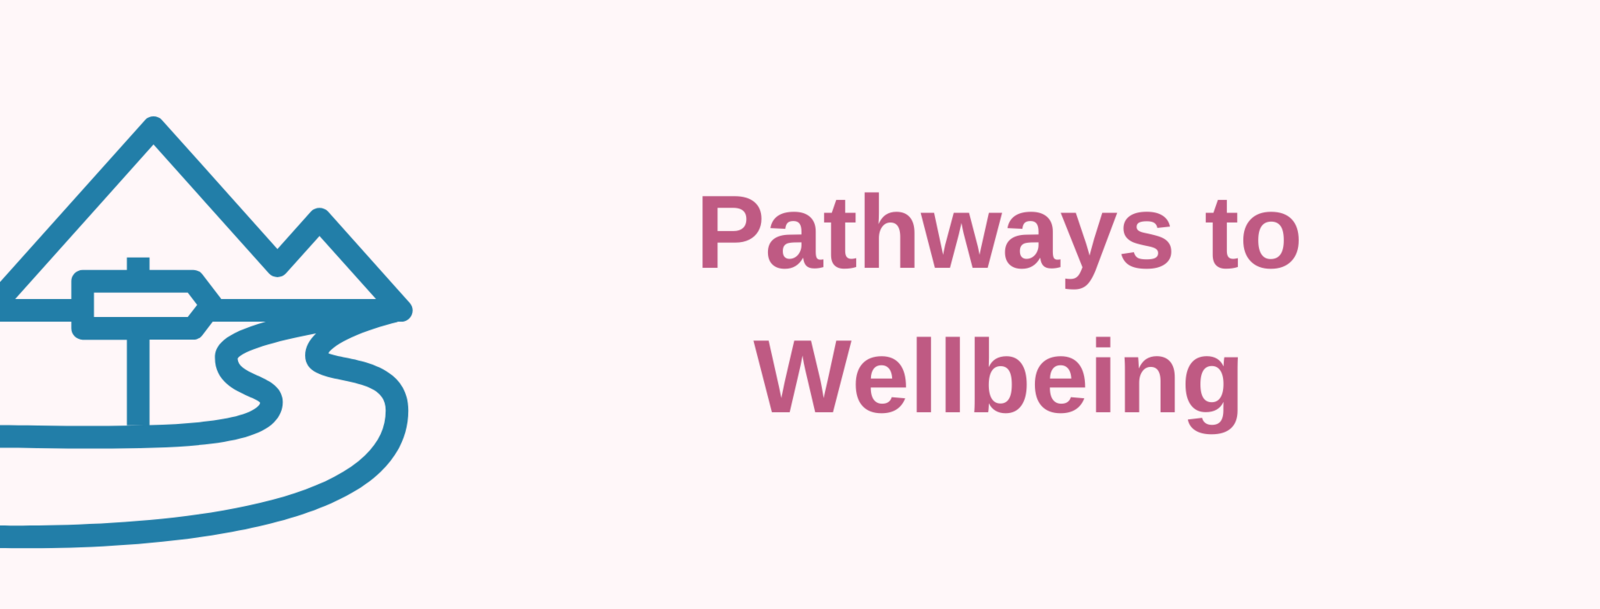 Red text: Pathways to Wellbeing. Mountain with Path and signpost outlined.